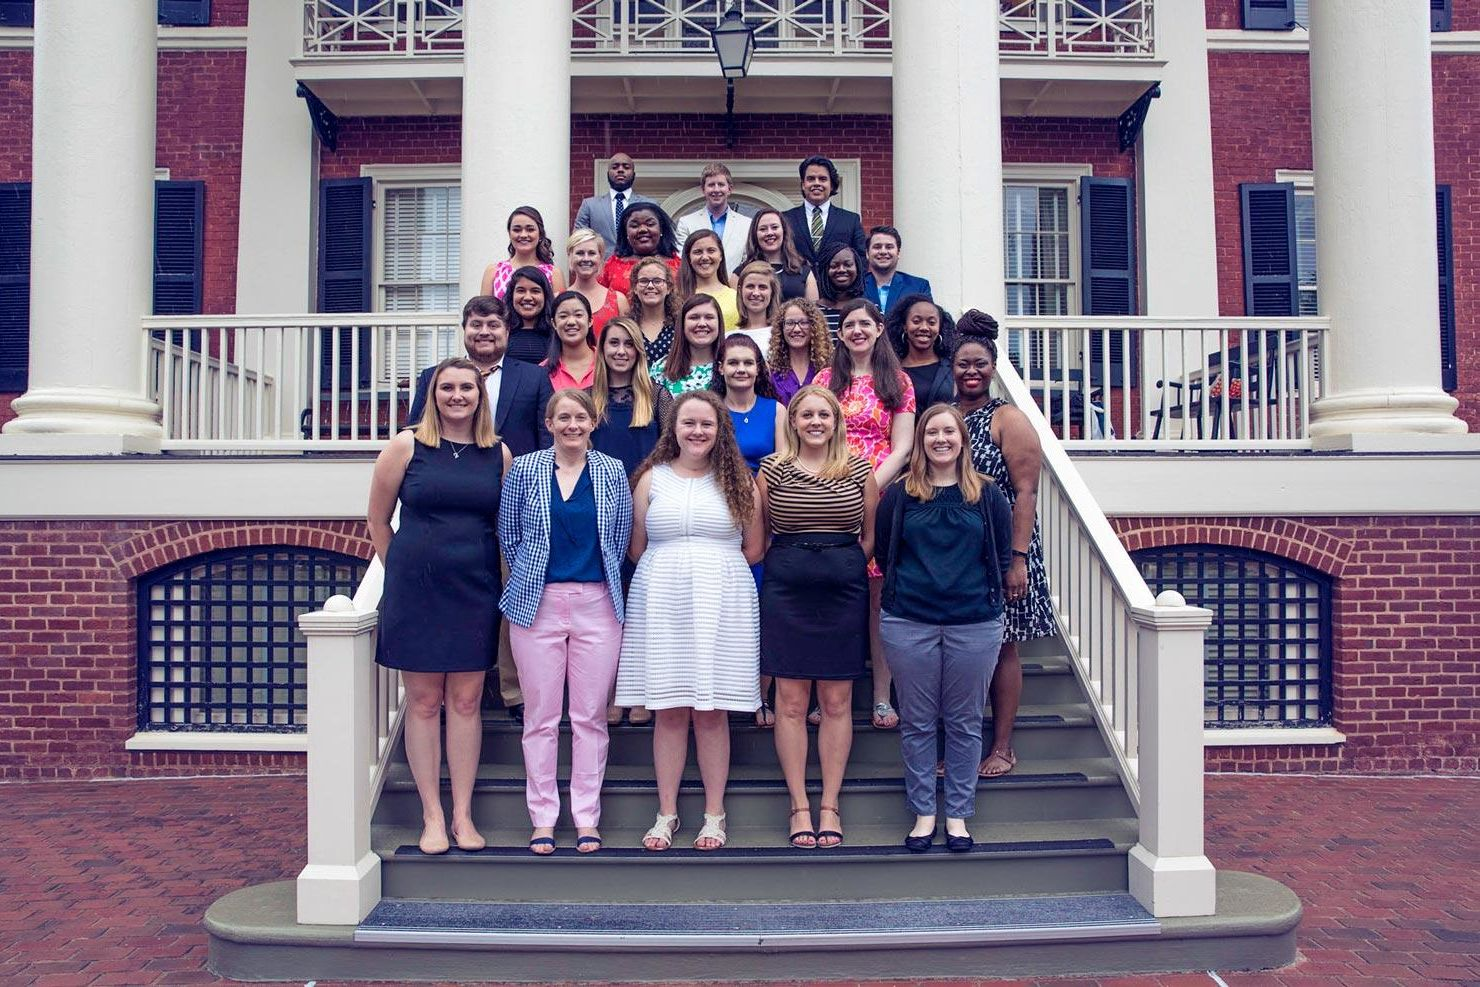 Dreams of College Become Reality With a Little Help For These Virginia Students